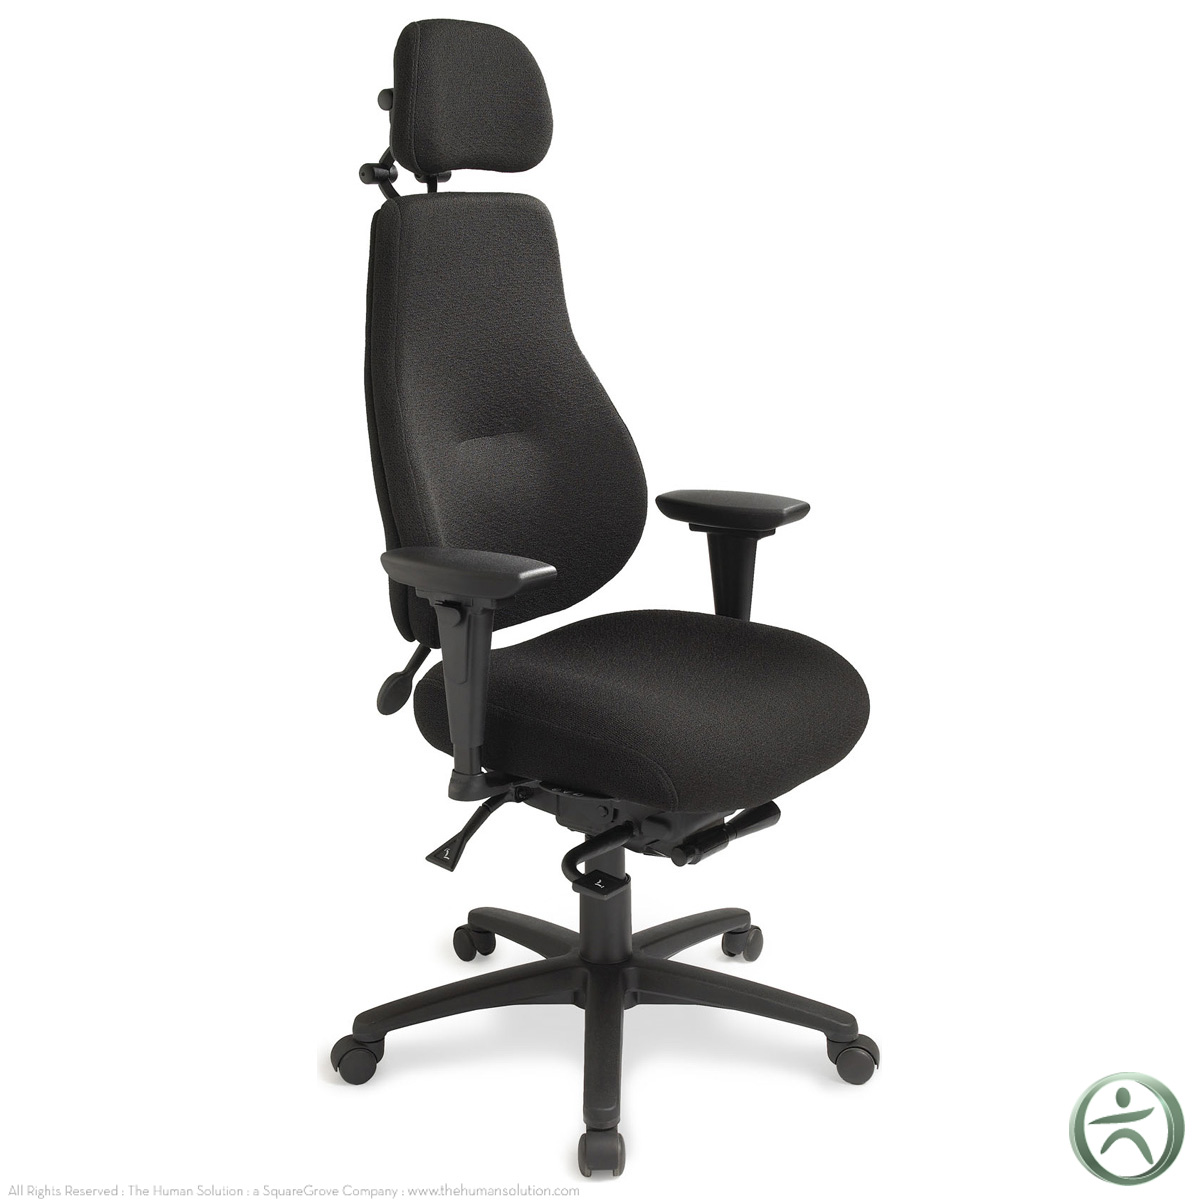 office chairs with adjustable arms with Ergocentric Mycentric Ergonomic Office Chair on Matias Ergo Pro Ergonomic Keyboard Review as well Jordan Visitor Chair likewise Ergocentric Mycentric Ergonomic Office Chair besides 3862375 in addition Humanscale Diffrient World Mesh Chair.